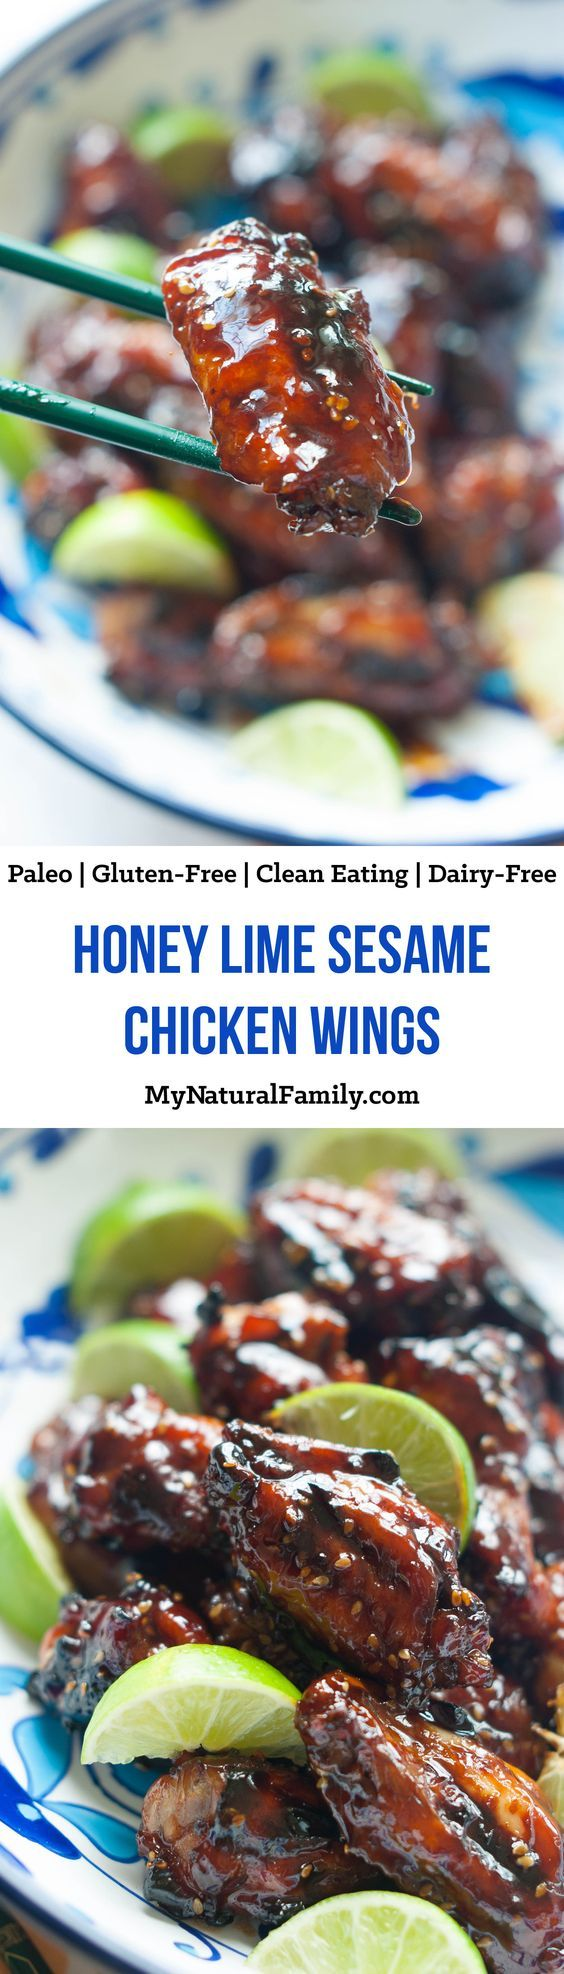 Honey Lime Sesame Chicken Wings Recipe {Paleo Gluten Free Clean Eating Dairy Free}